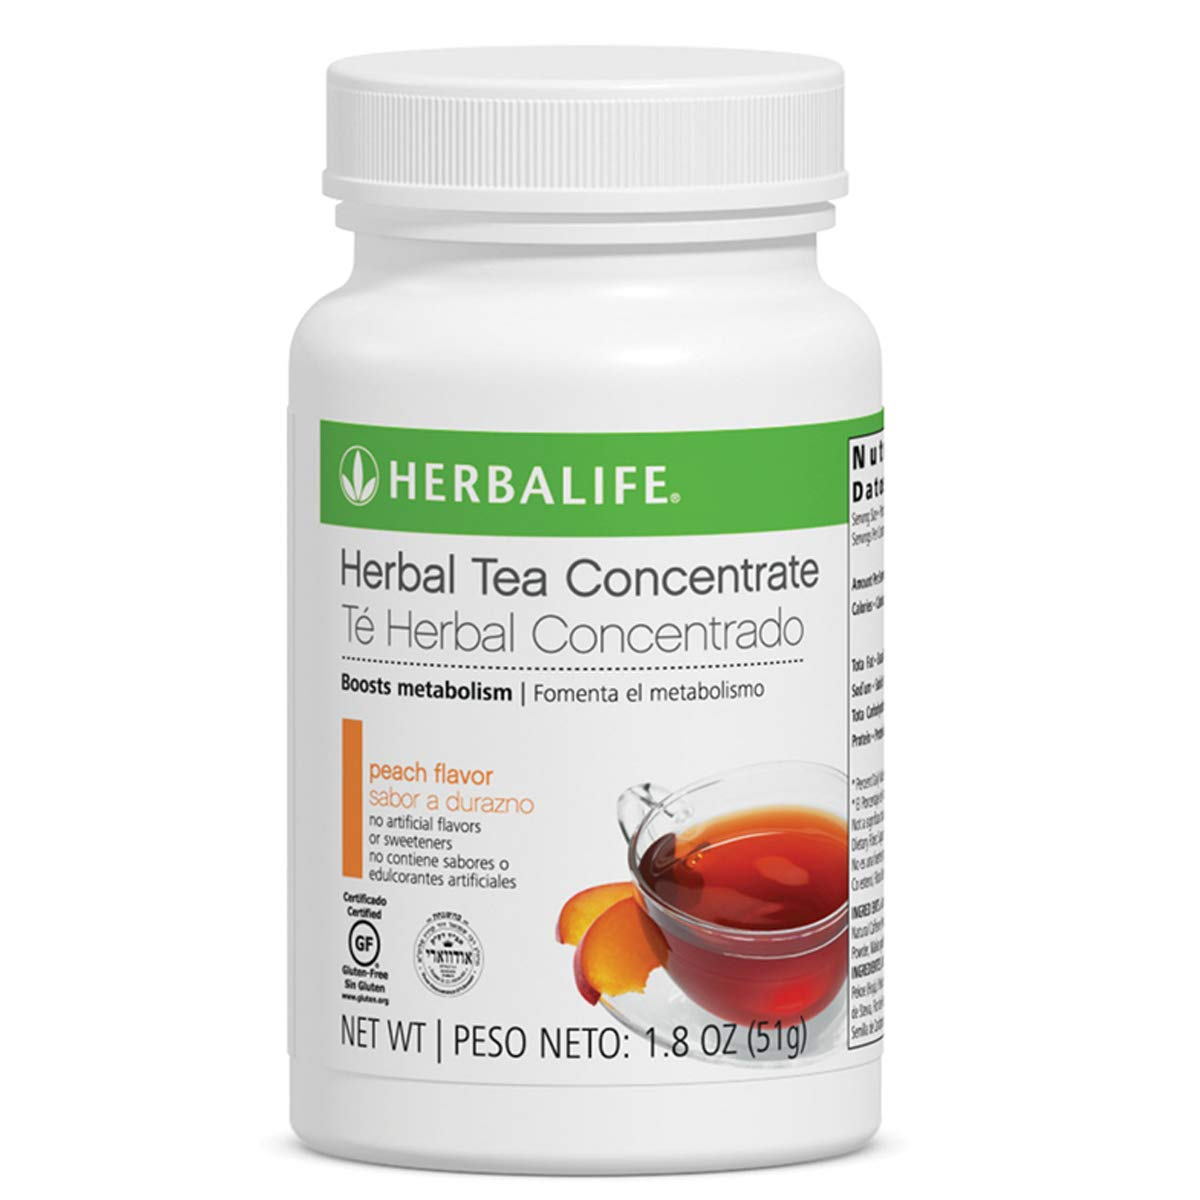 Herbal supreme Concentrate Tea Peach Flavor Omaha Mall Oz Management Weight Dri 1.8